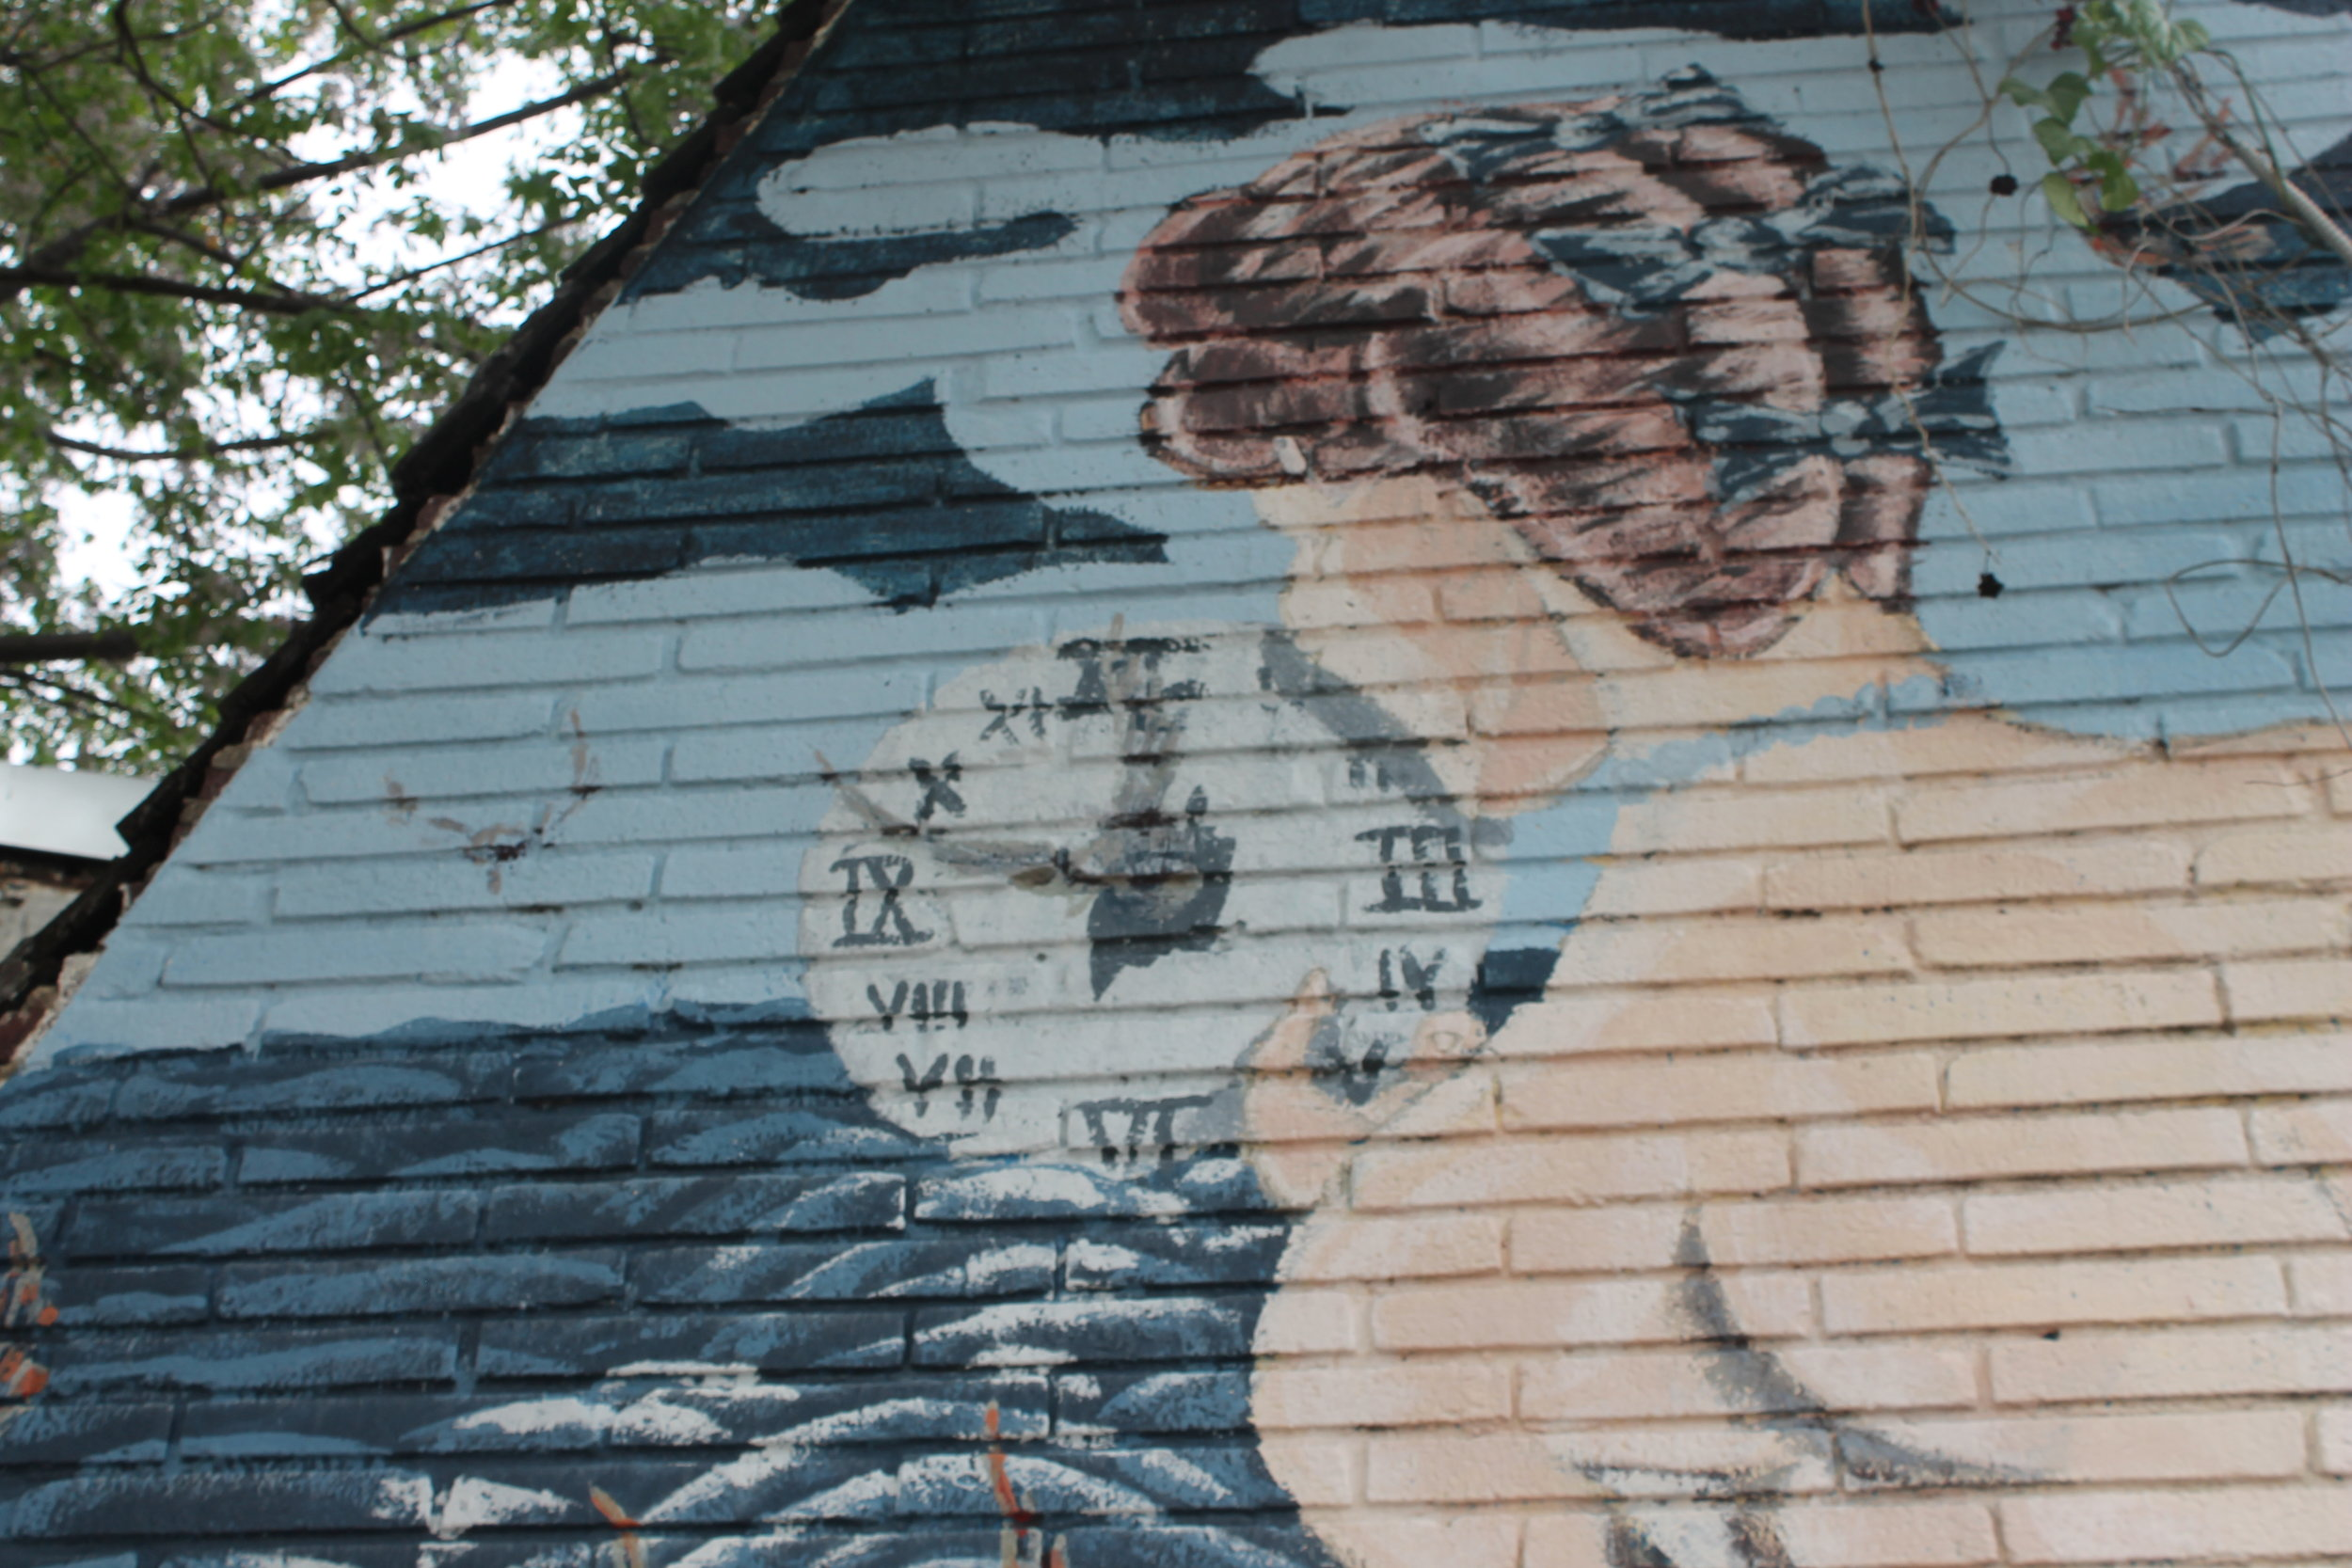 Take an upscale dive under the sea with this mermaid painted outside noted Dallas dive bar Lakewood Landing.